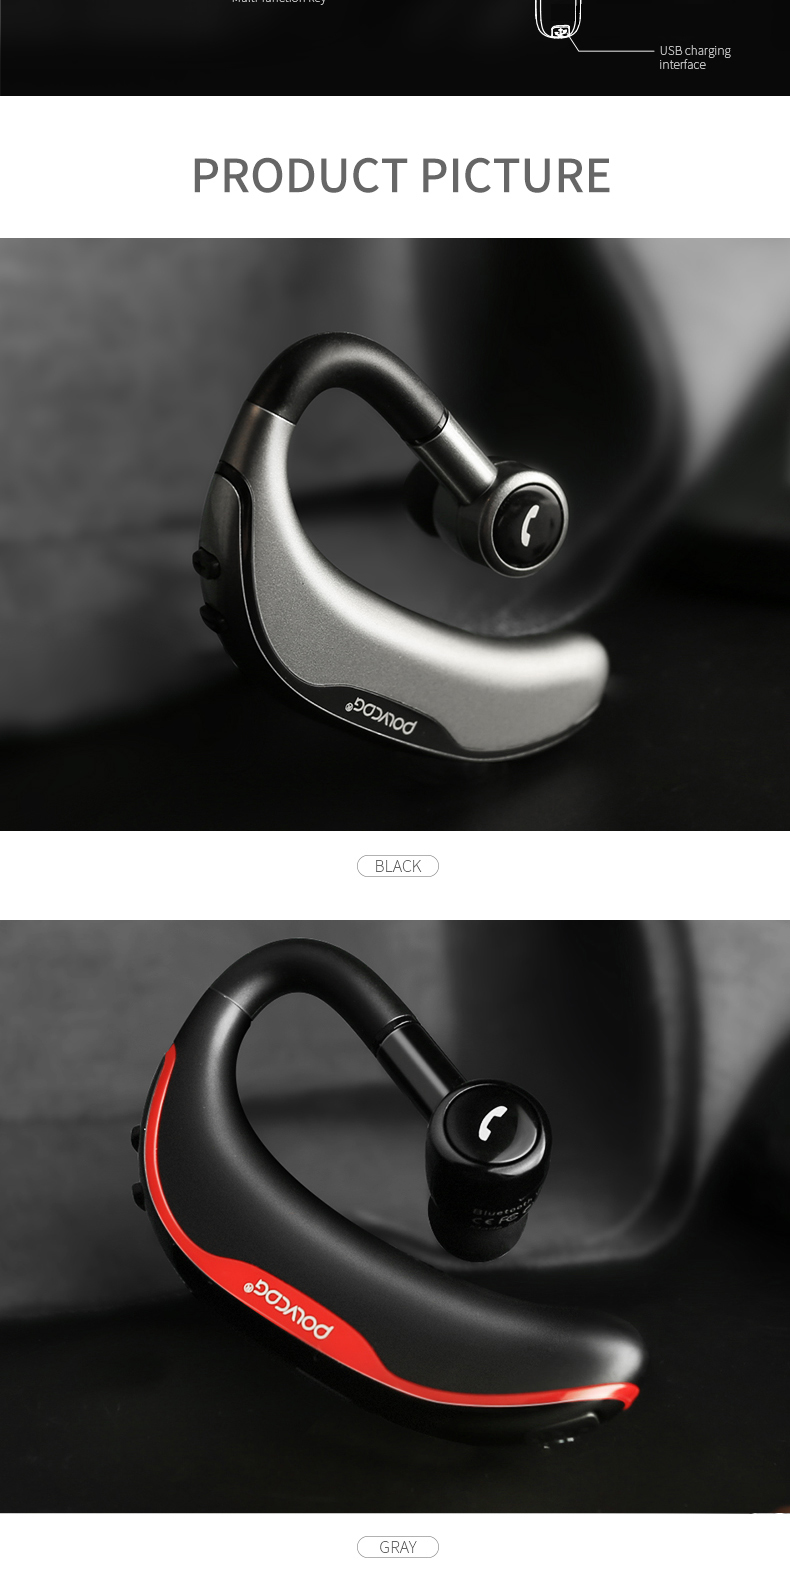 F600 Wireless Headphones Drive Bluetooth Hook Design Handsfree Stereo Mic Earphone Earbuds for I12 Tws pro for iPhone Samsung